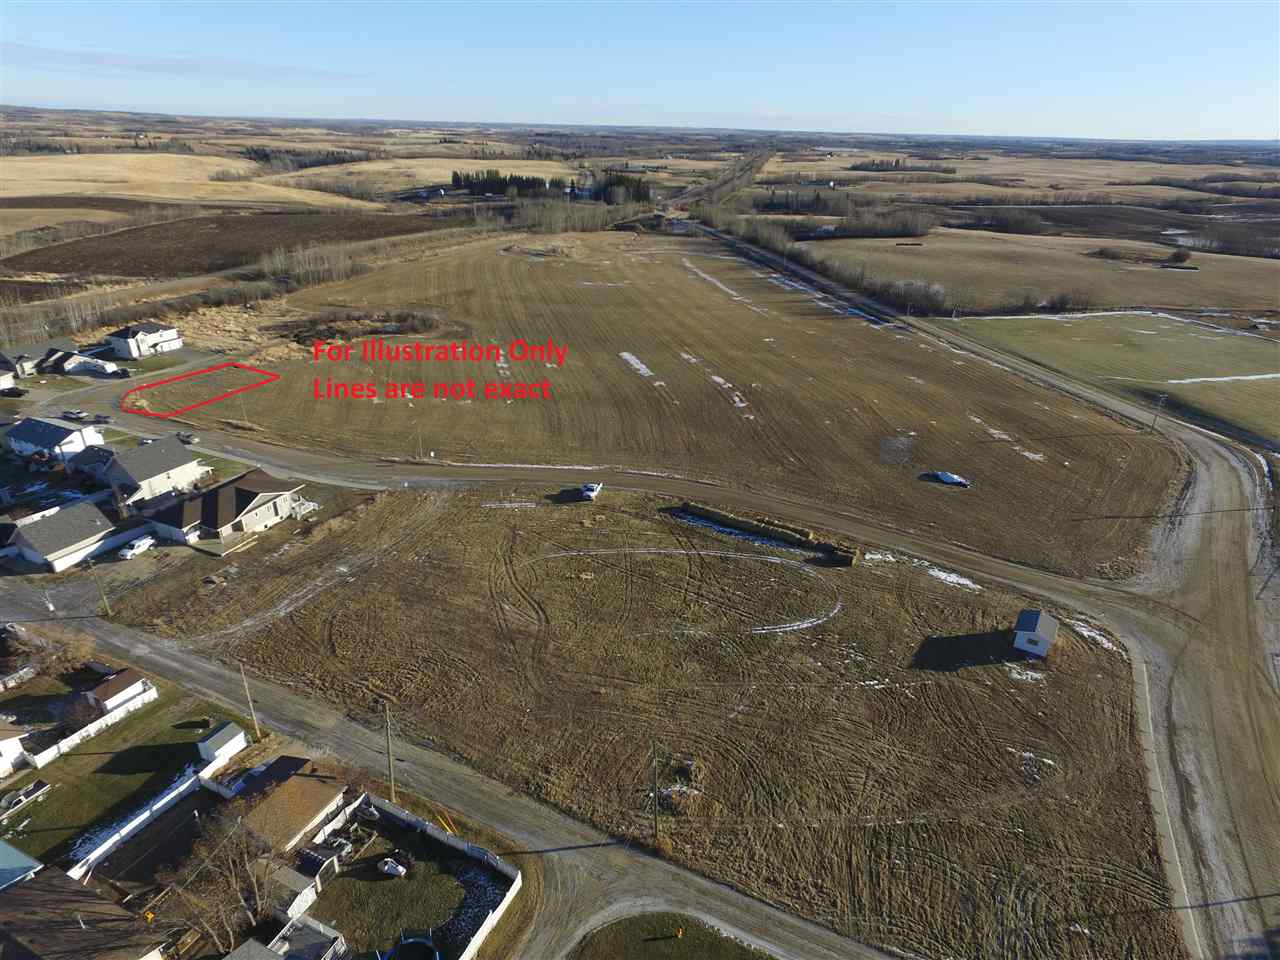 Thinking of building in Mayerthorpe? Come view this un-serviced corner lot in a new development. Town of Mayerthorpe is keen to grow and is fostering and encouraging new housing, investment, and business startups with possible municipal infrastructure and tax incentives. Come be a part of this growing community!